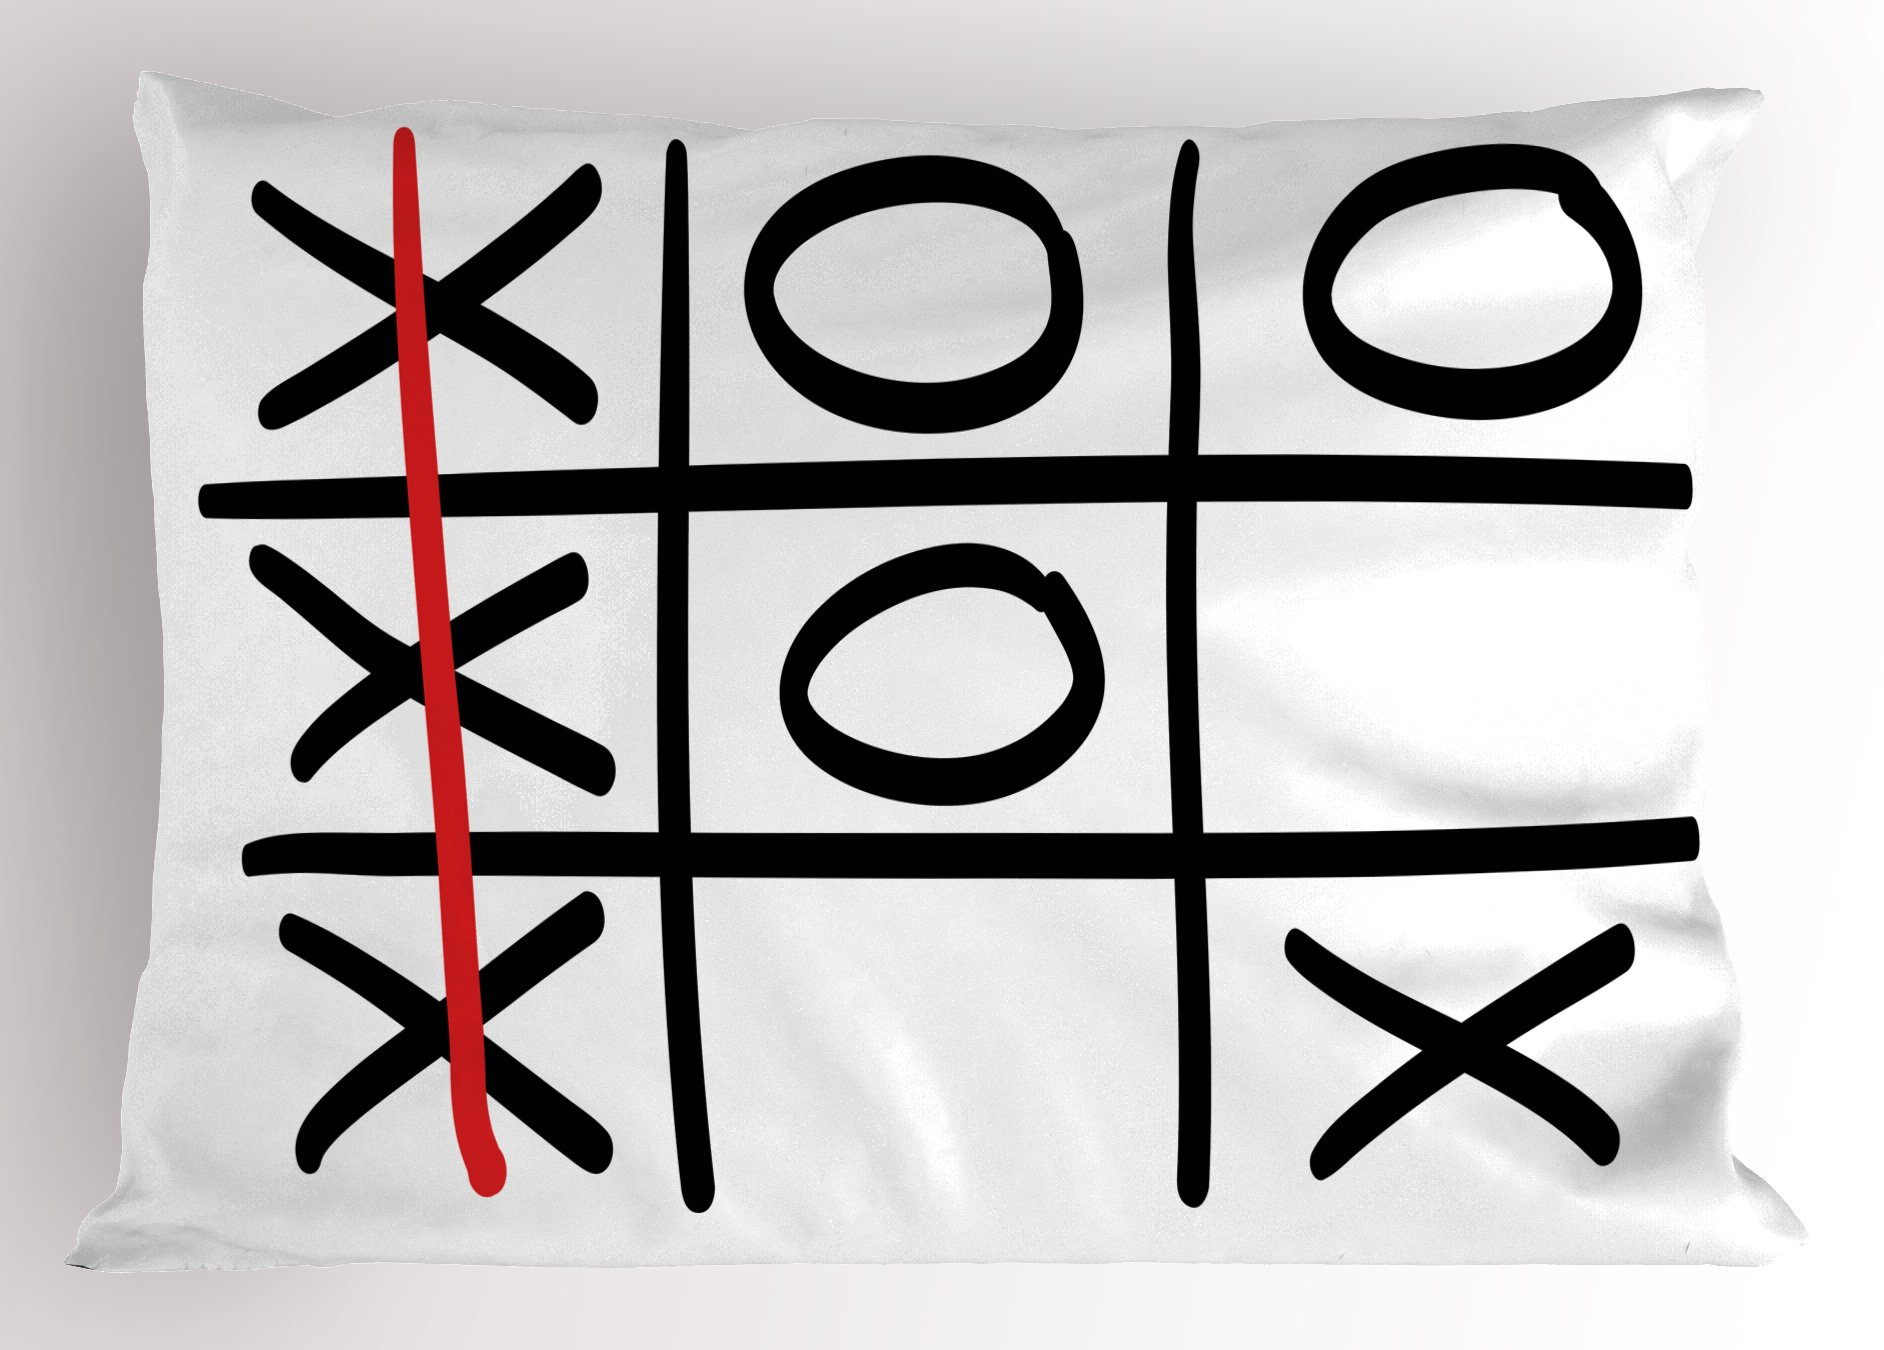 Ambesonne Xo Pillow Sham, Popular Tic Tac Toe Game Pattern Hand Drawn Design Win Victory Finish Theme, Decorative Standard Queen Size Printed Pillowcase, 30 X 20 inches, Vermilion Black White